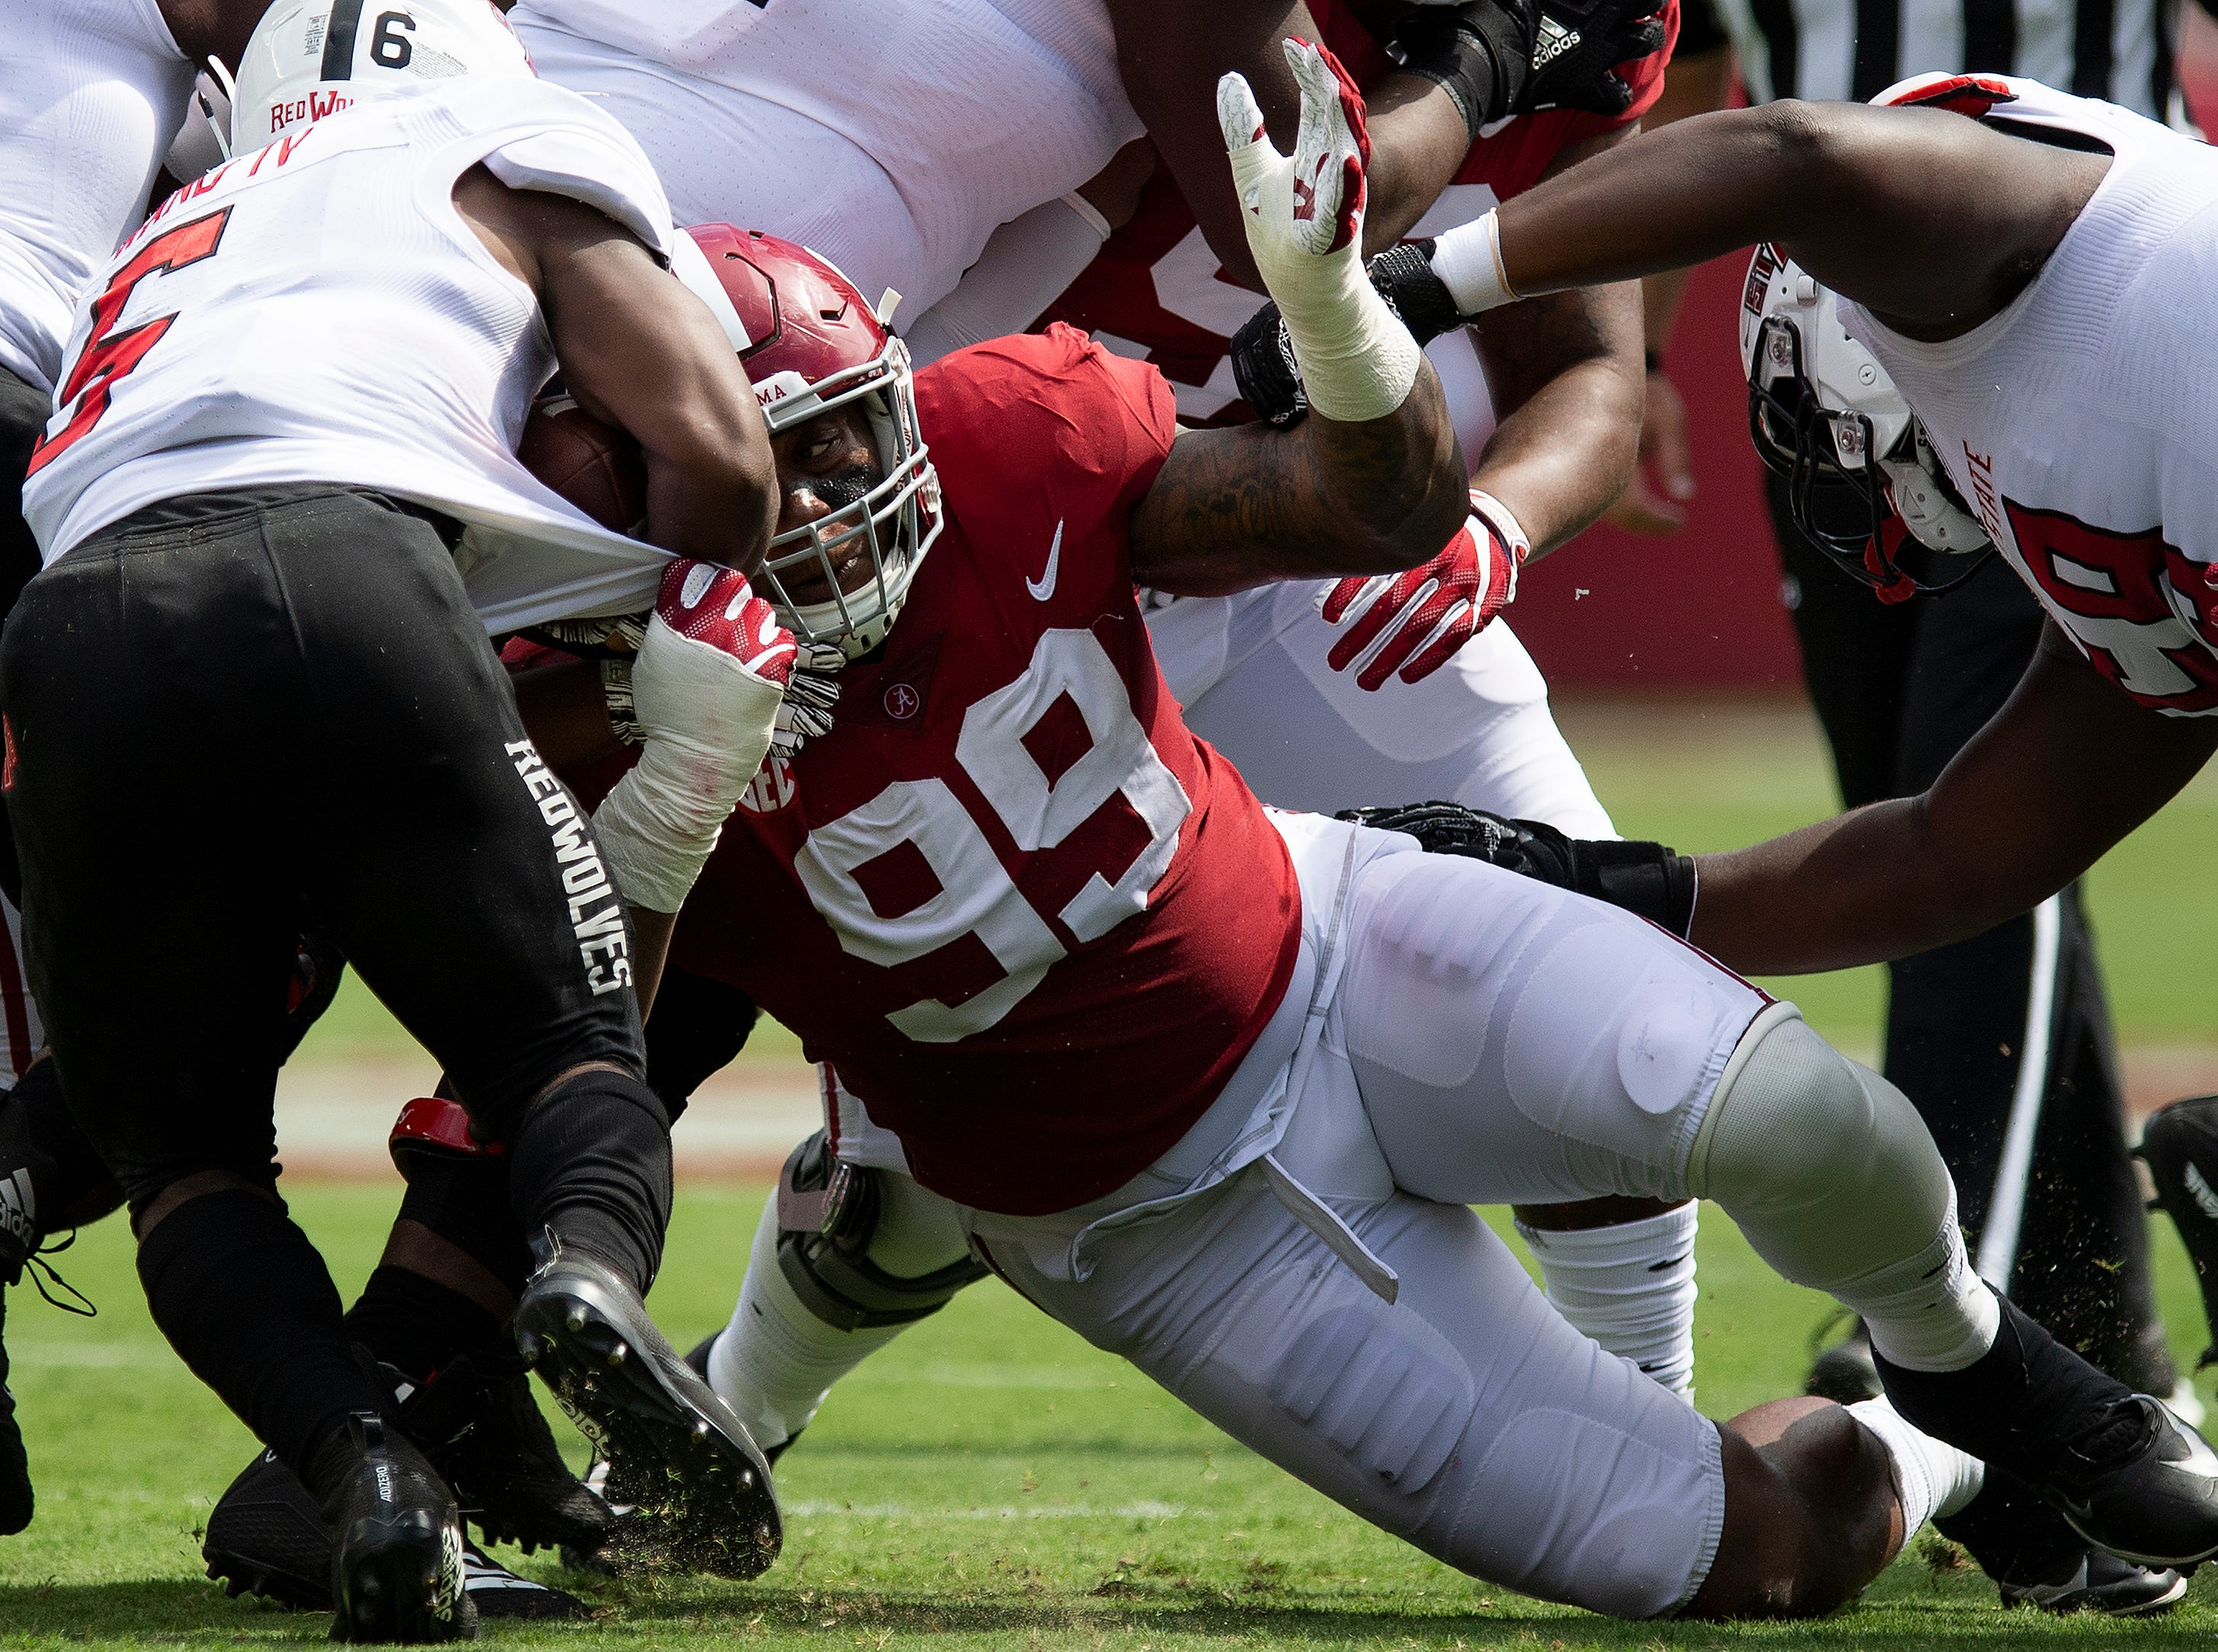 Alabama defensive lineman Raekwon Davis (99) tackles Arkansas State running back Warren Wand (6) In first half action at Bryant Denny Stadium in Tuscaloosa, Ala., on Saturday September 8, 2018.